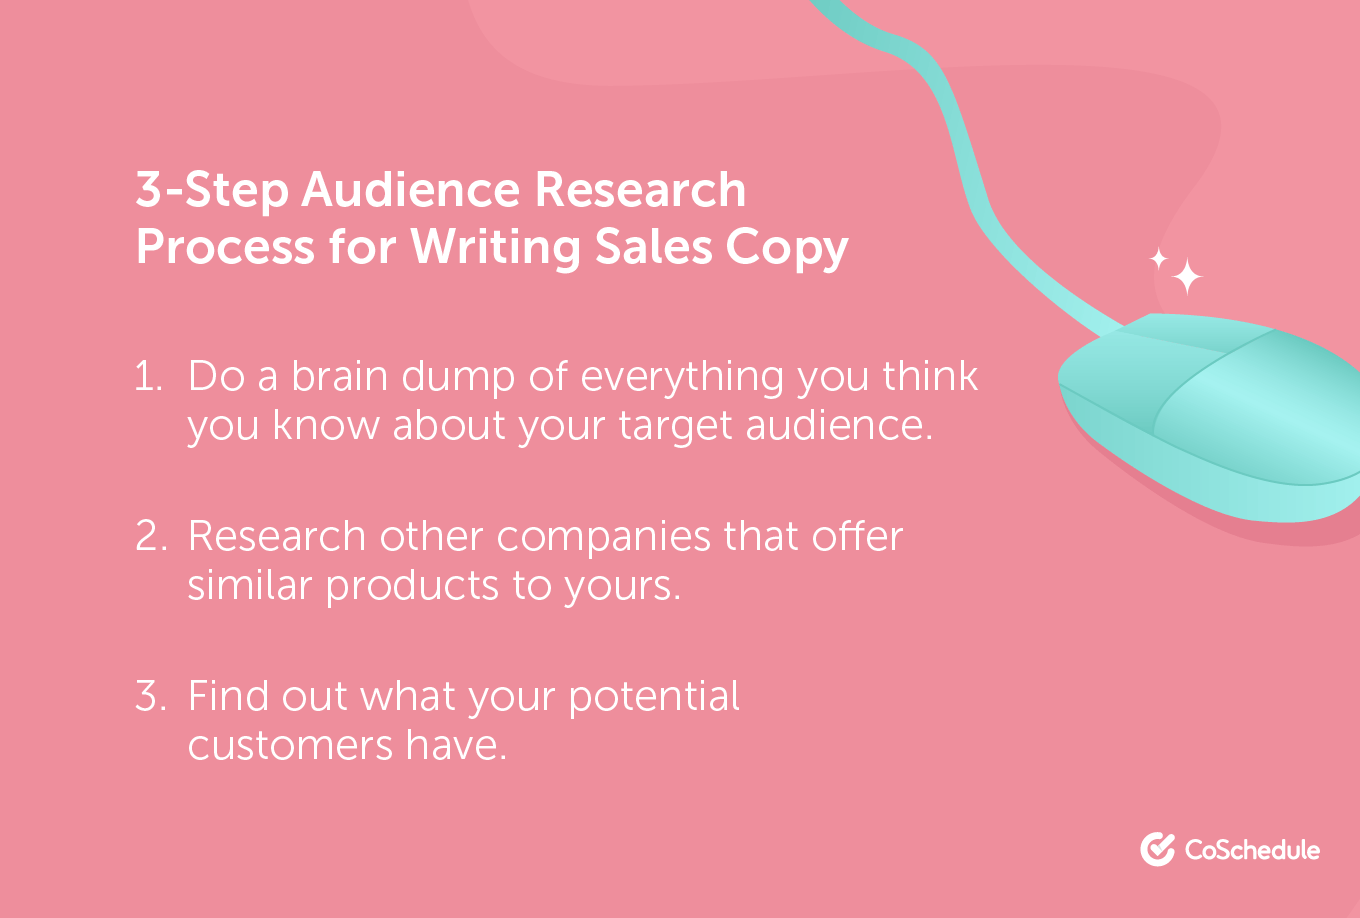 3-Step Audience Research Process for Writing Sales Copy